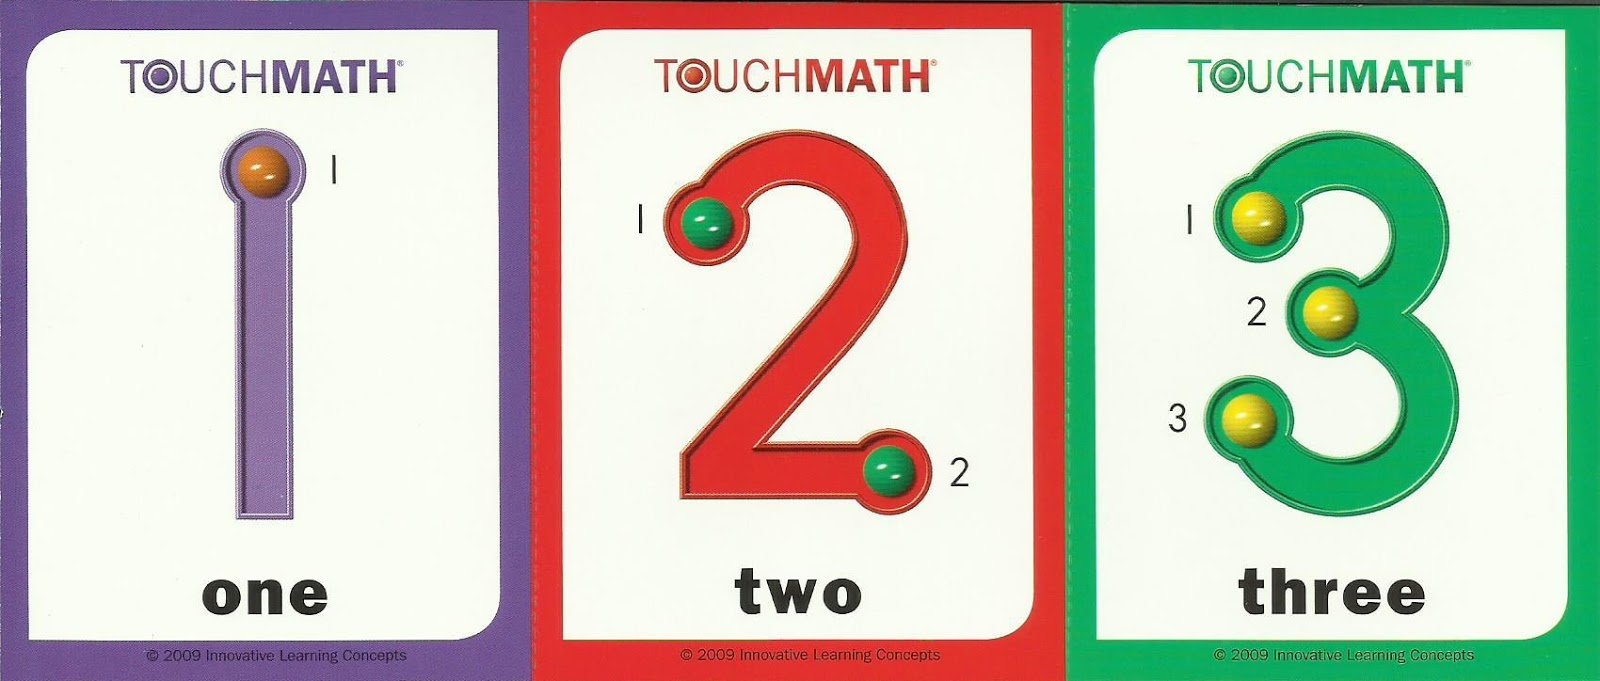 Worksheets Free Touch Math Worksheets every bed of roses a touch math adventure touchmath review friday 15 march 2013